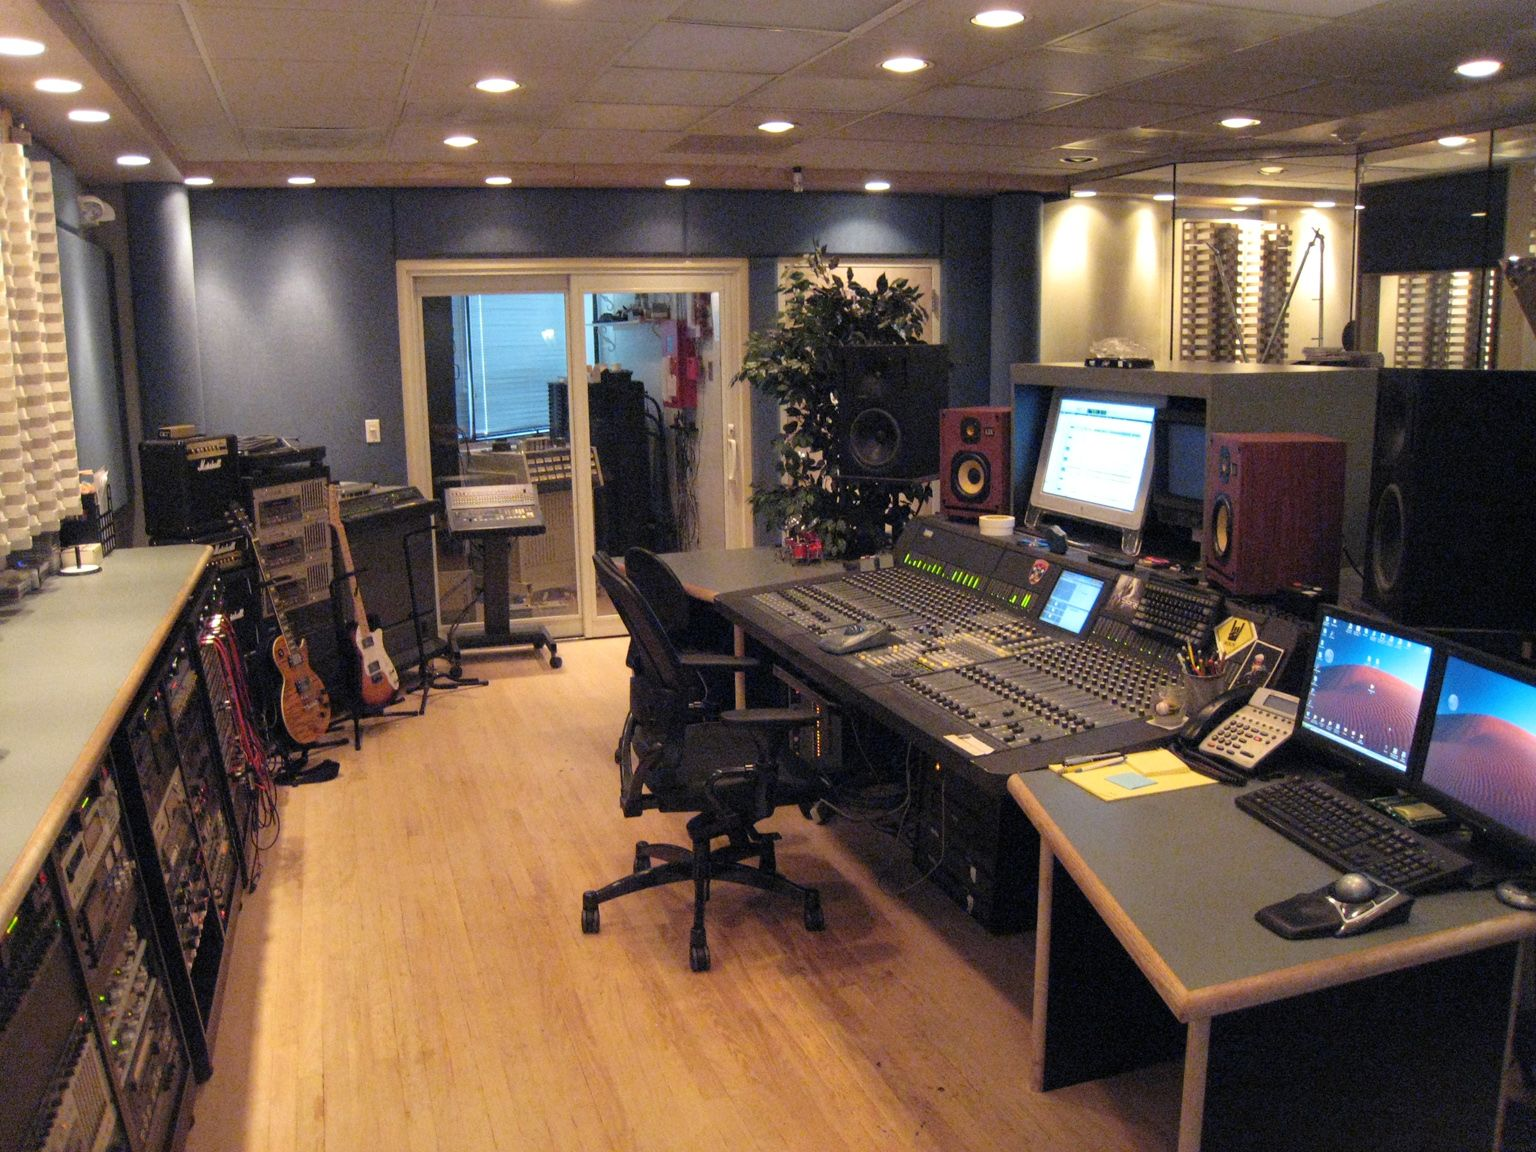 Find This Pin And More On Music Rooms U0026 Home Recording Studios By  Michellesandlin.